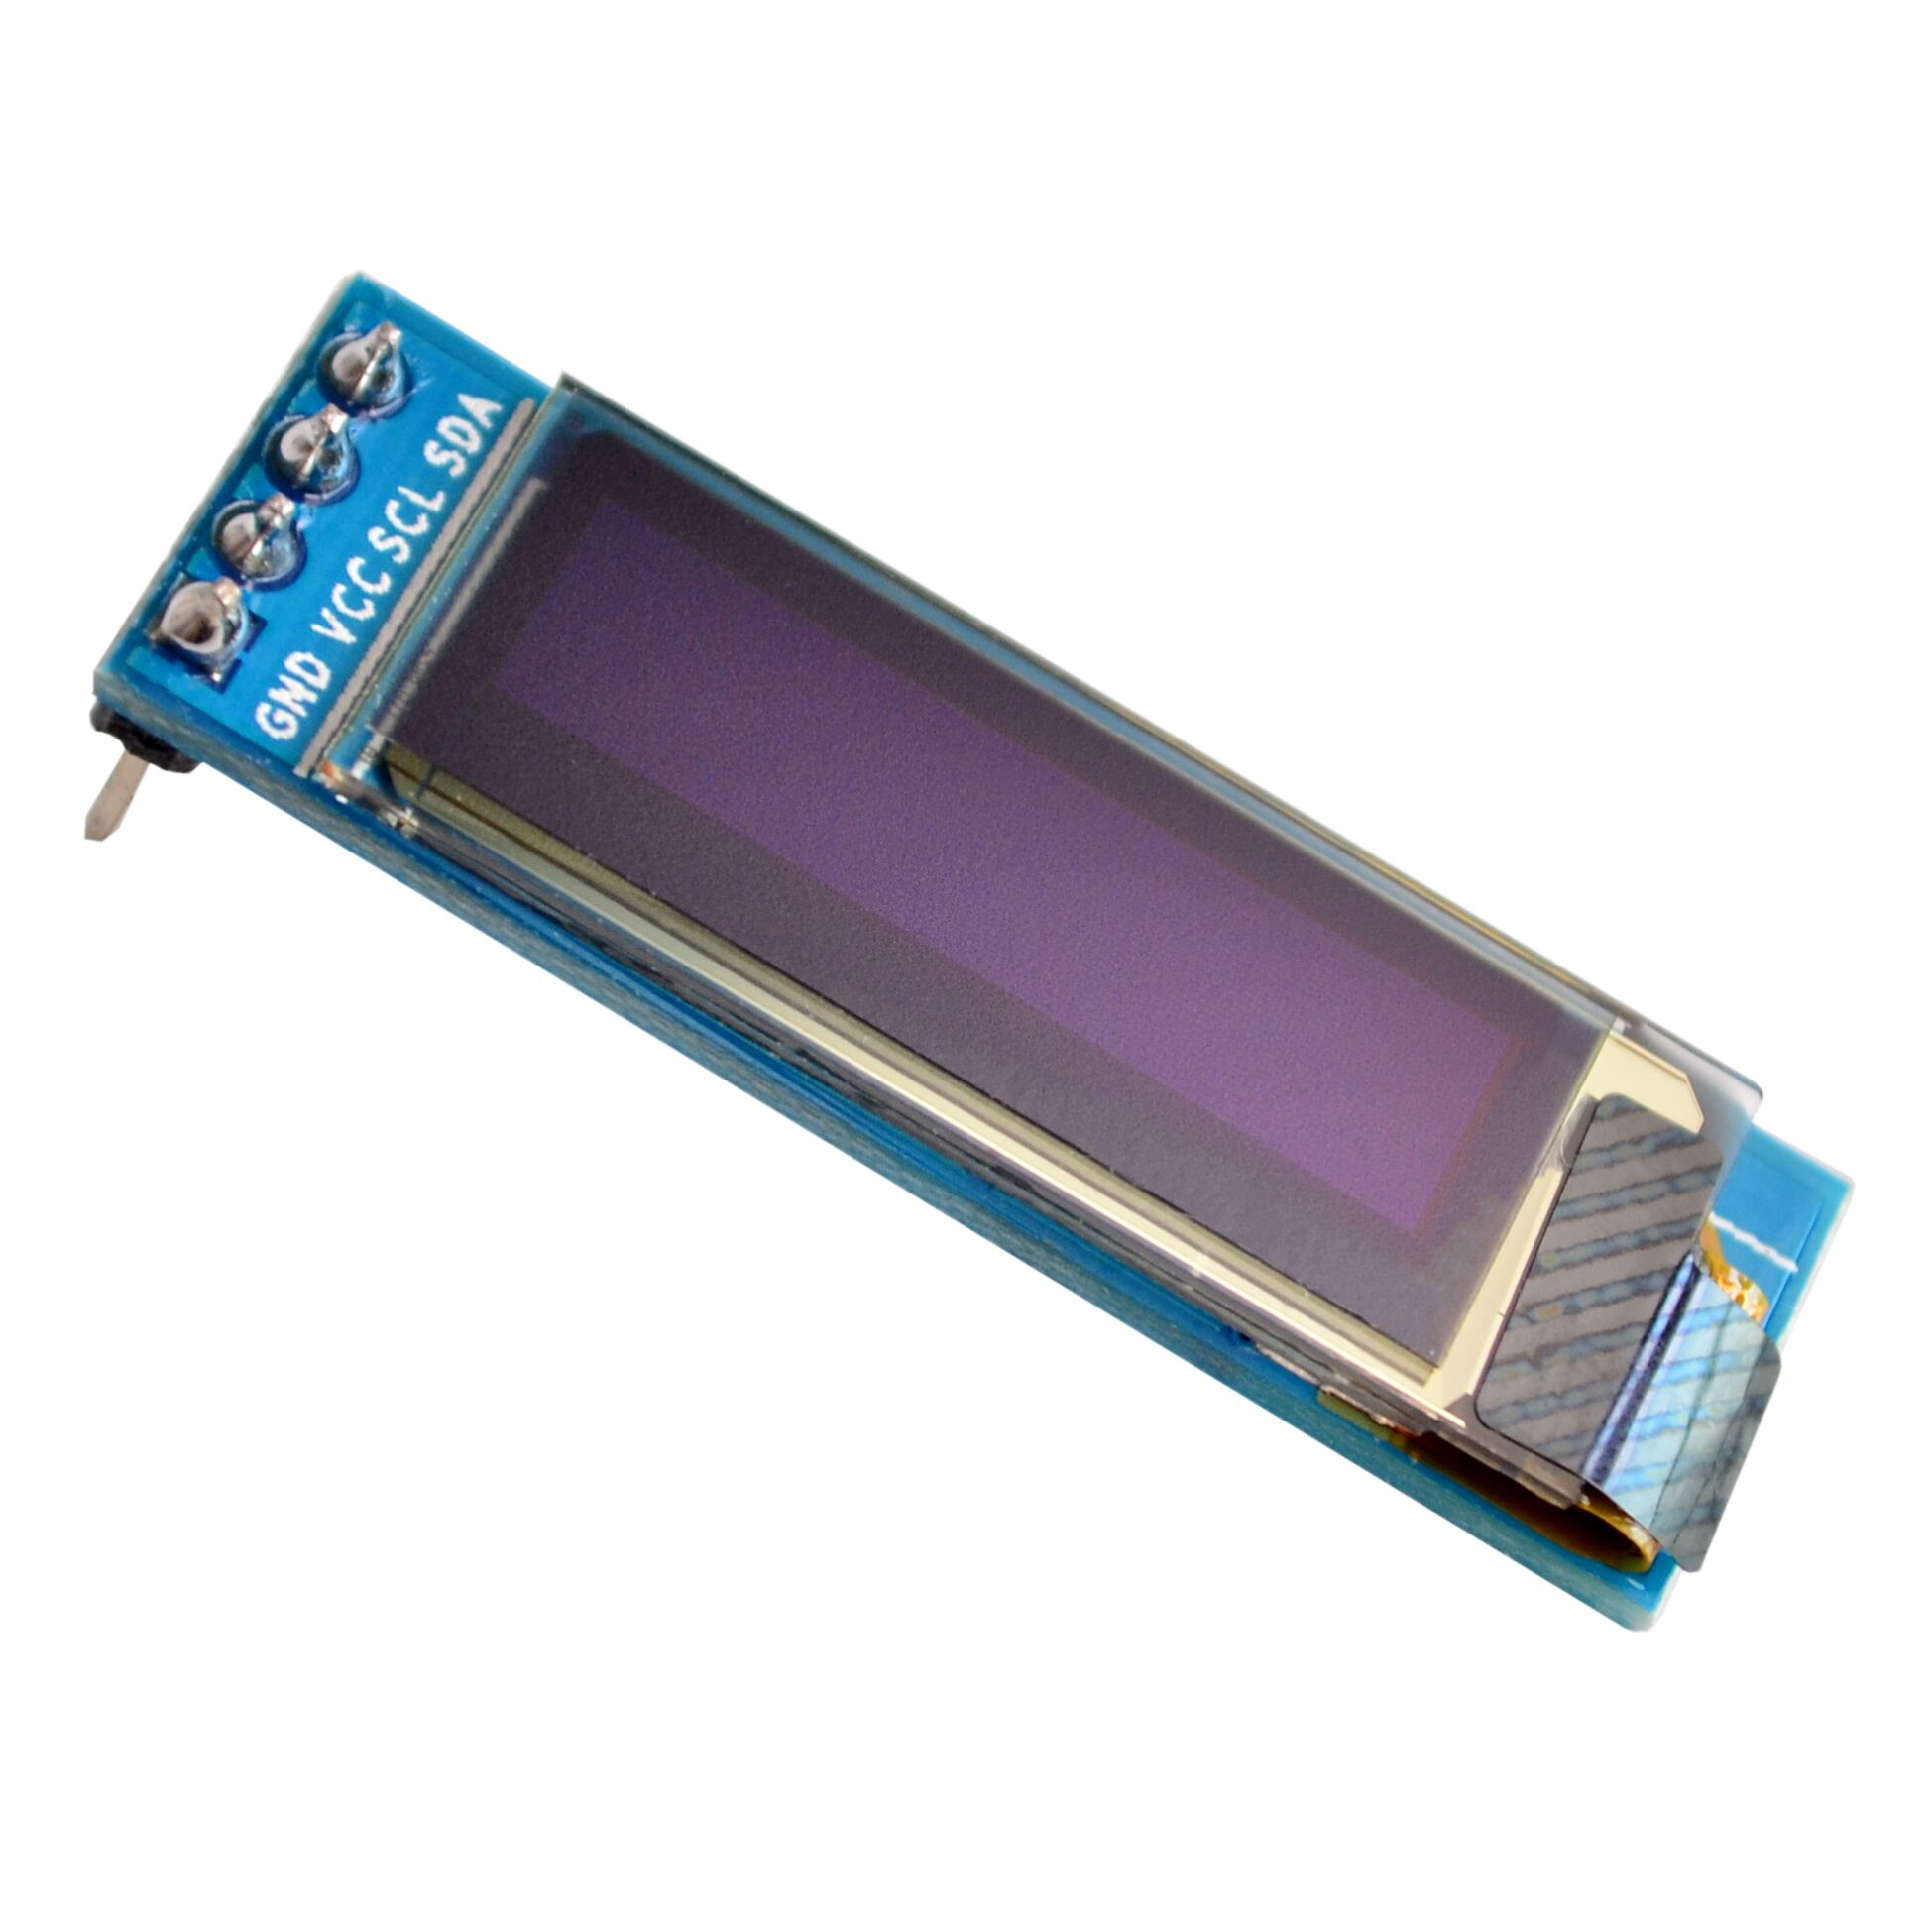 10PCS/LOT 0.91 Inch 12832 White And Blue Color 128X32 OLED LCD LED Display Module 0.91